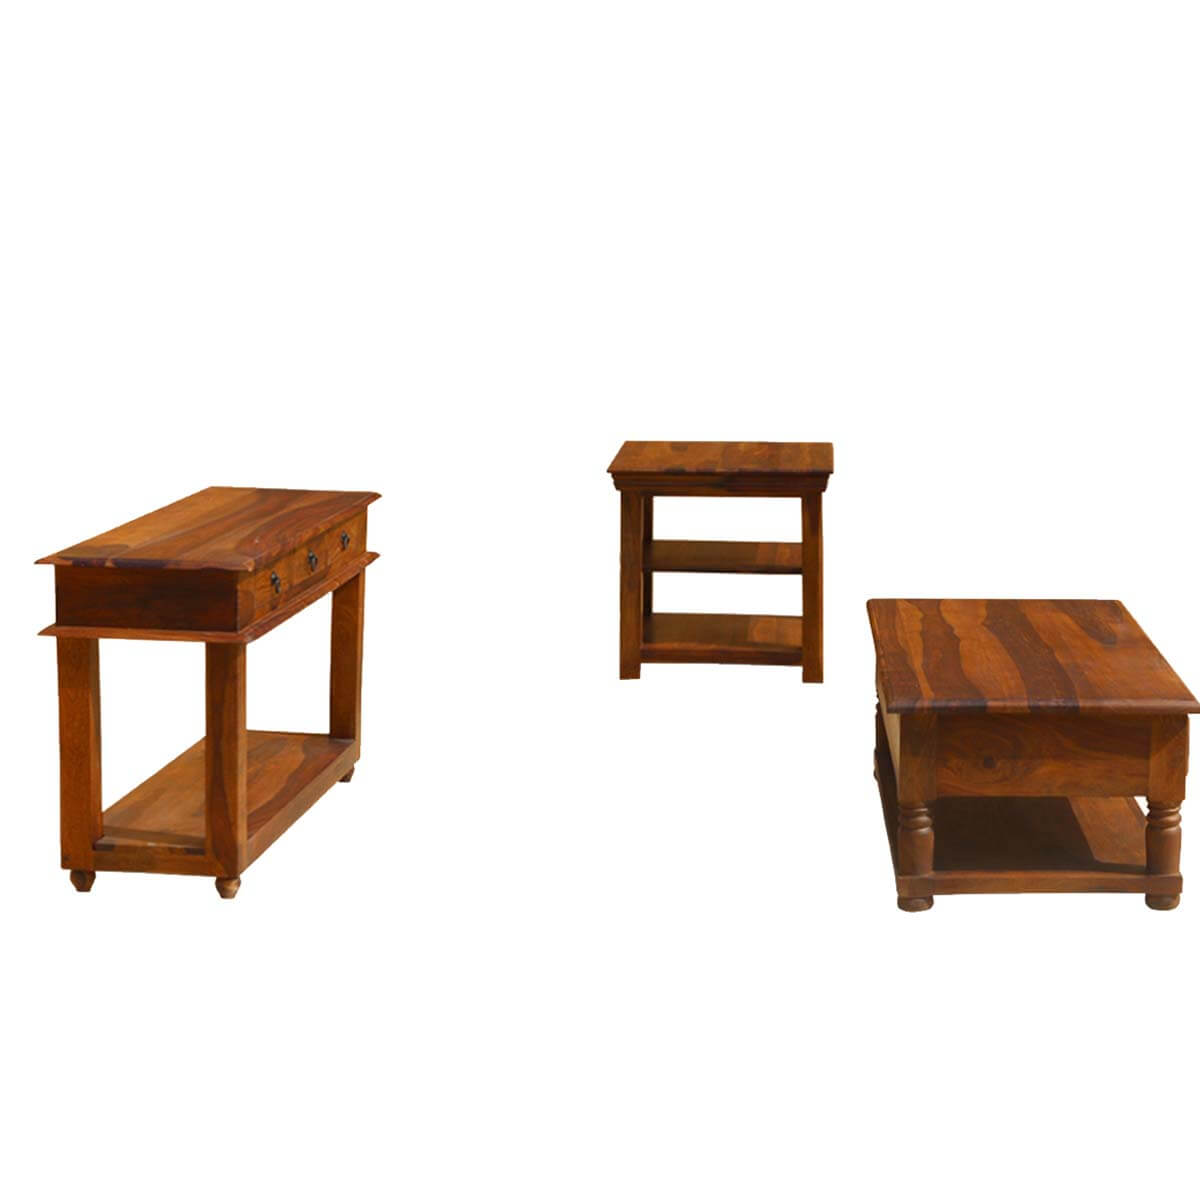 Early American Solid Wood Console Coffee Accent Table 3pc Set